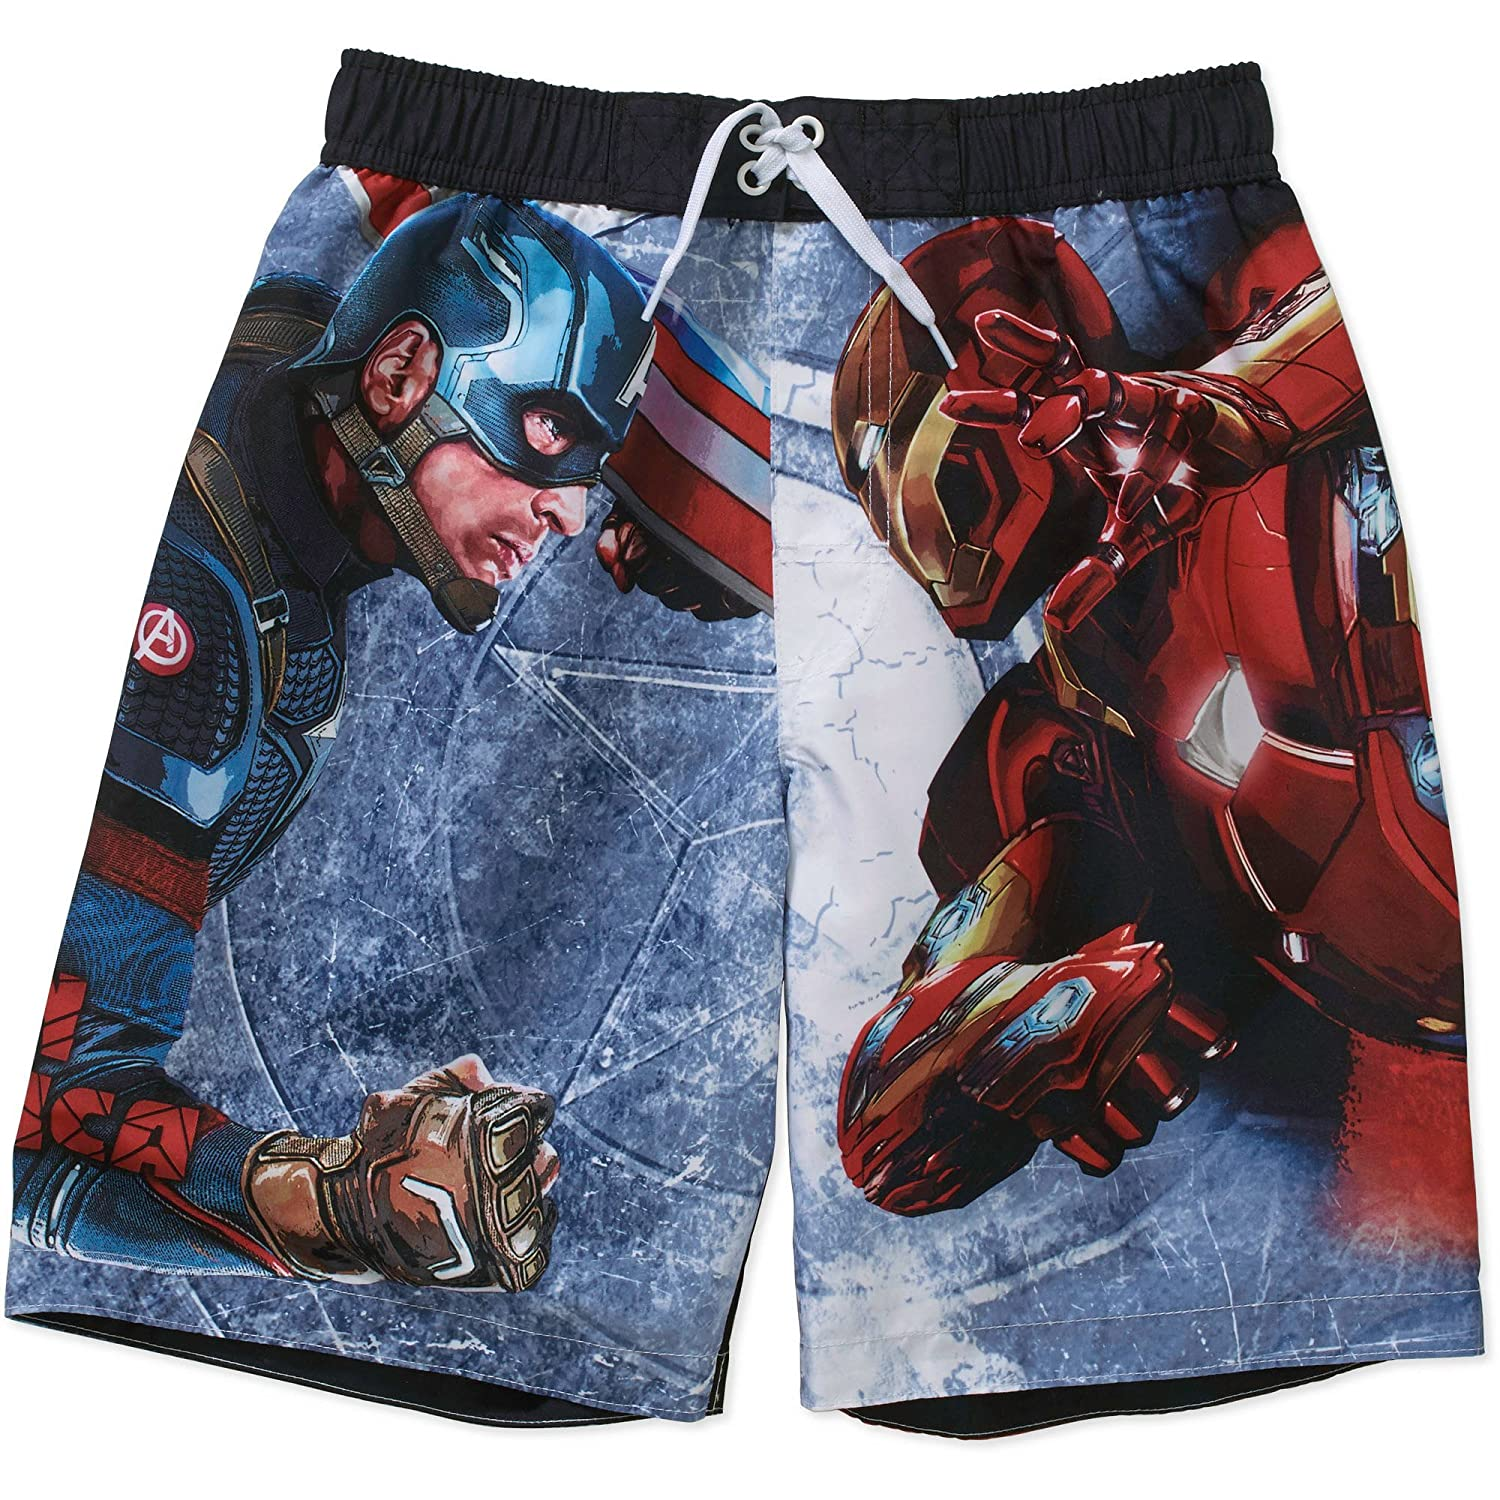 Marvel Avengers Boys Swim Shortsサイズ4?/ 5